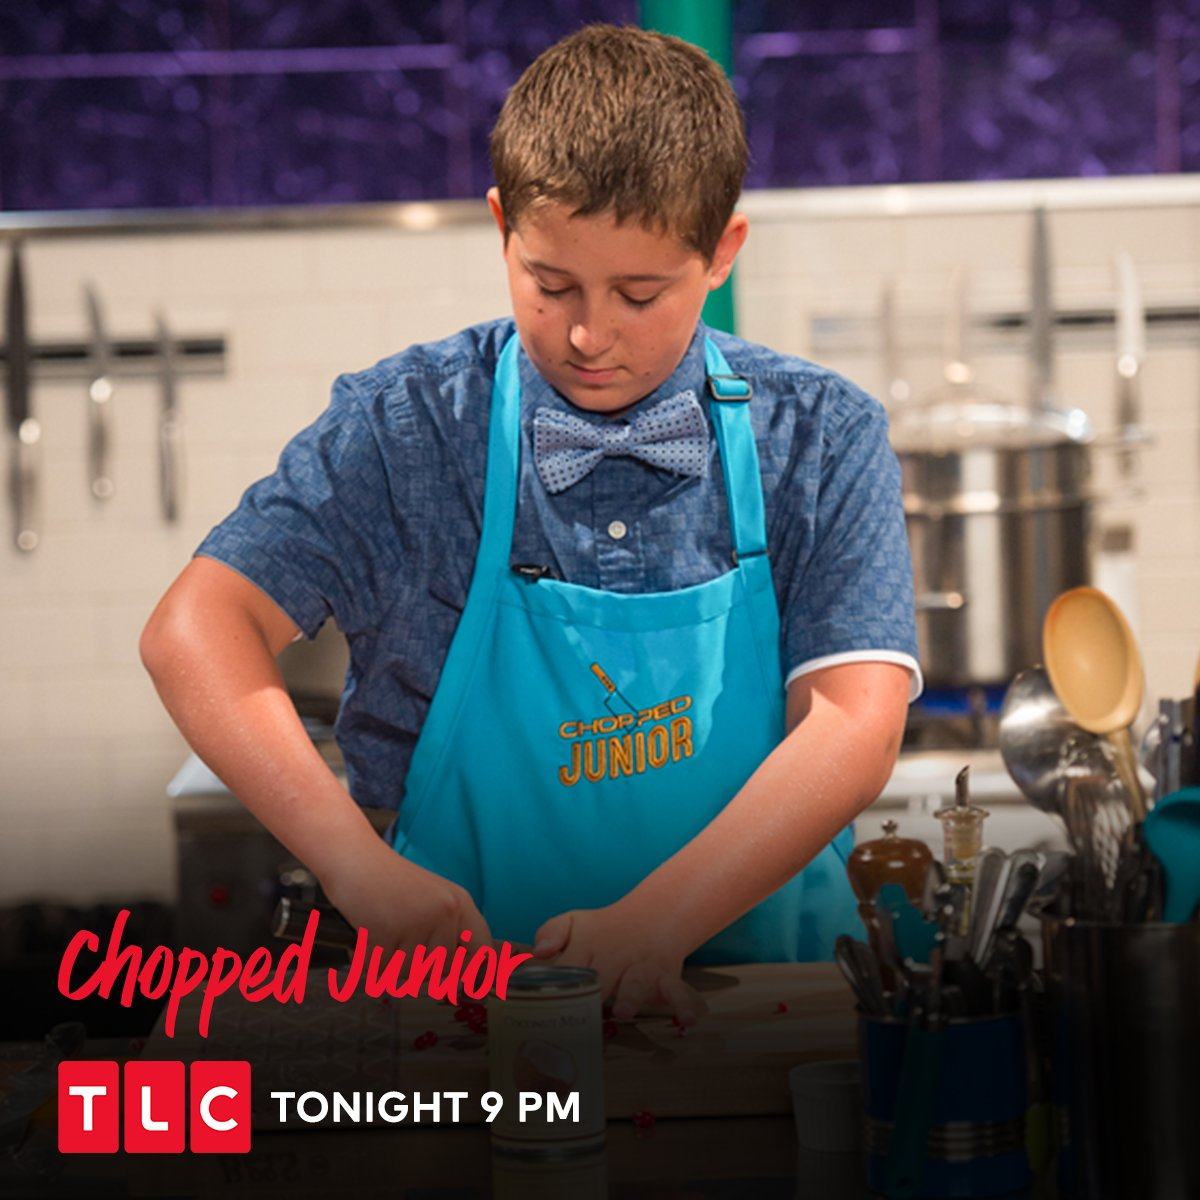 It's a sweet, sweet world! Watch the junior chefs compete to make desserts that please the judges sweet-tooth. Don't miss #ChoppedJunior, tonight at 9 PM, only on TLC.   #TLC #TLCIndia #food #foodlove #chefs #kids #kidchefs #foodies<br>http://pic.twitter.com/bR2bkz4r6t